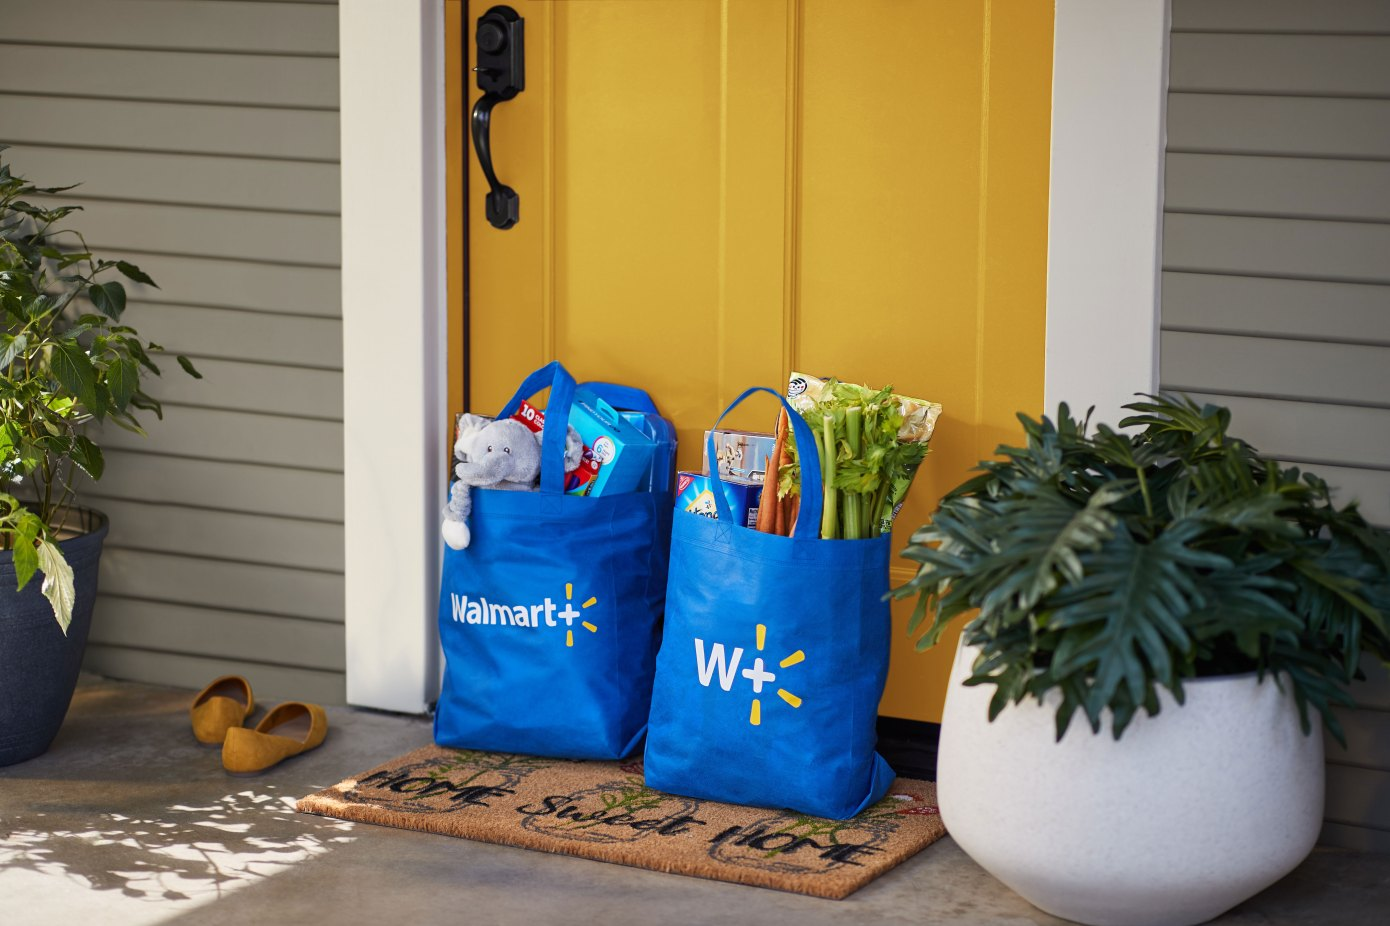 Walmart+ focuses on delivery